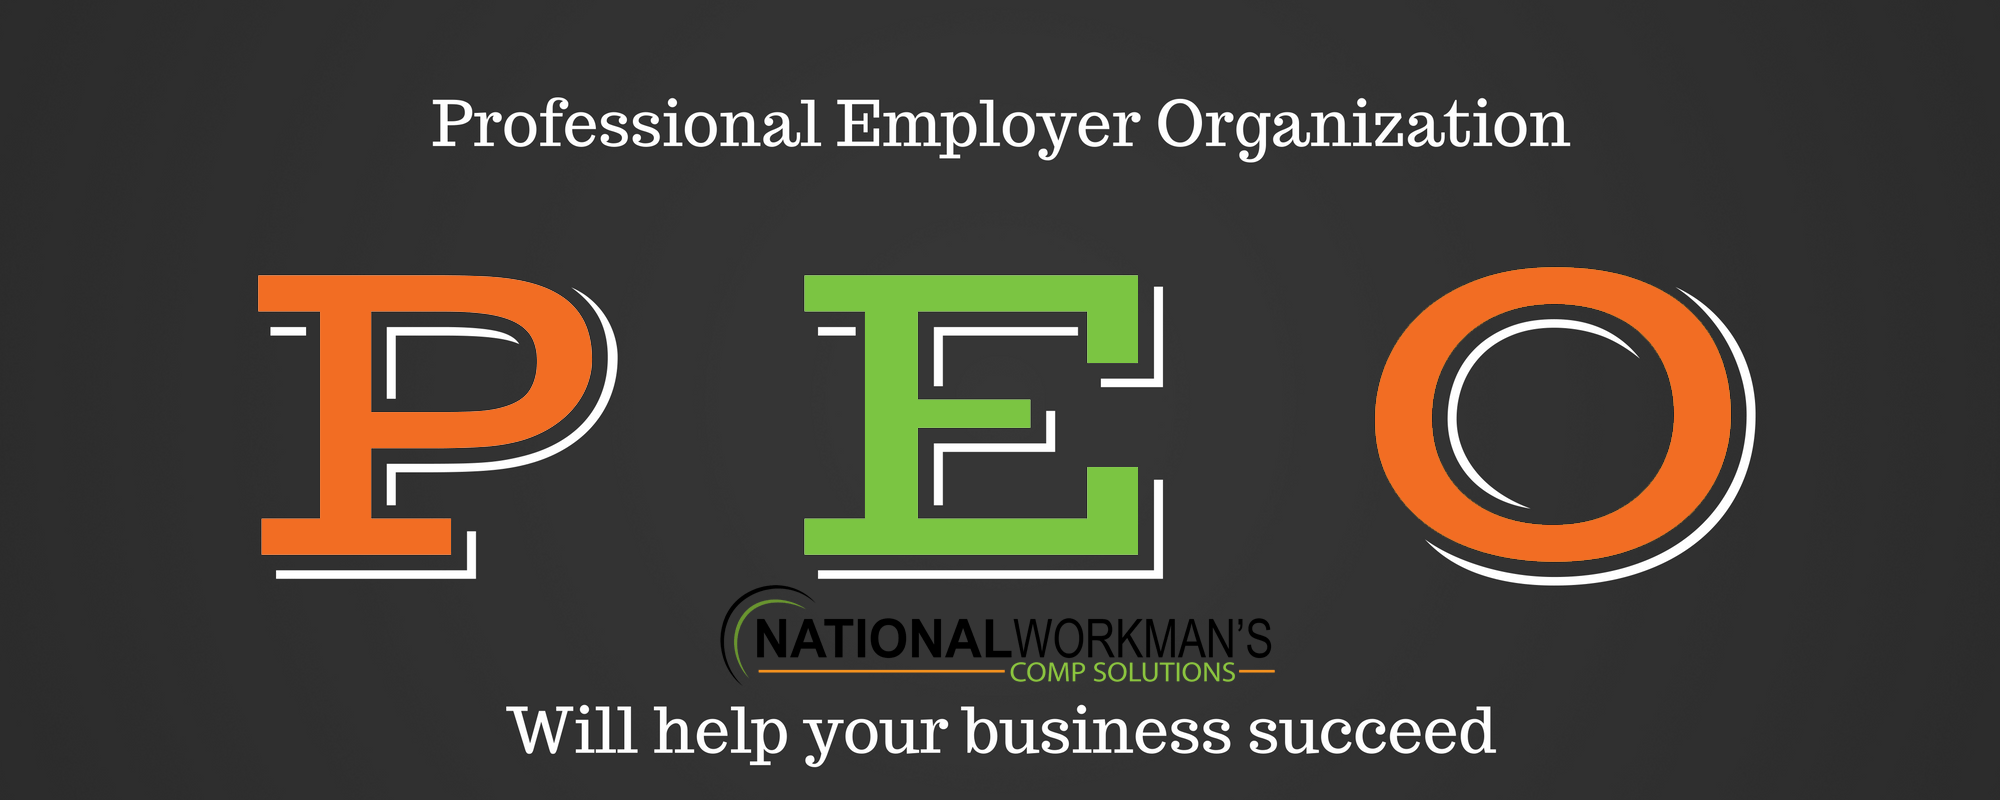 professional-employer-organization